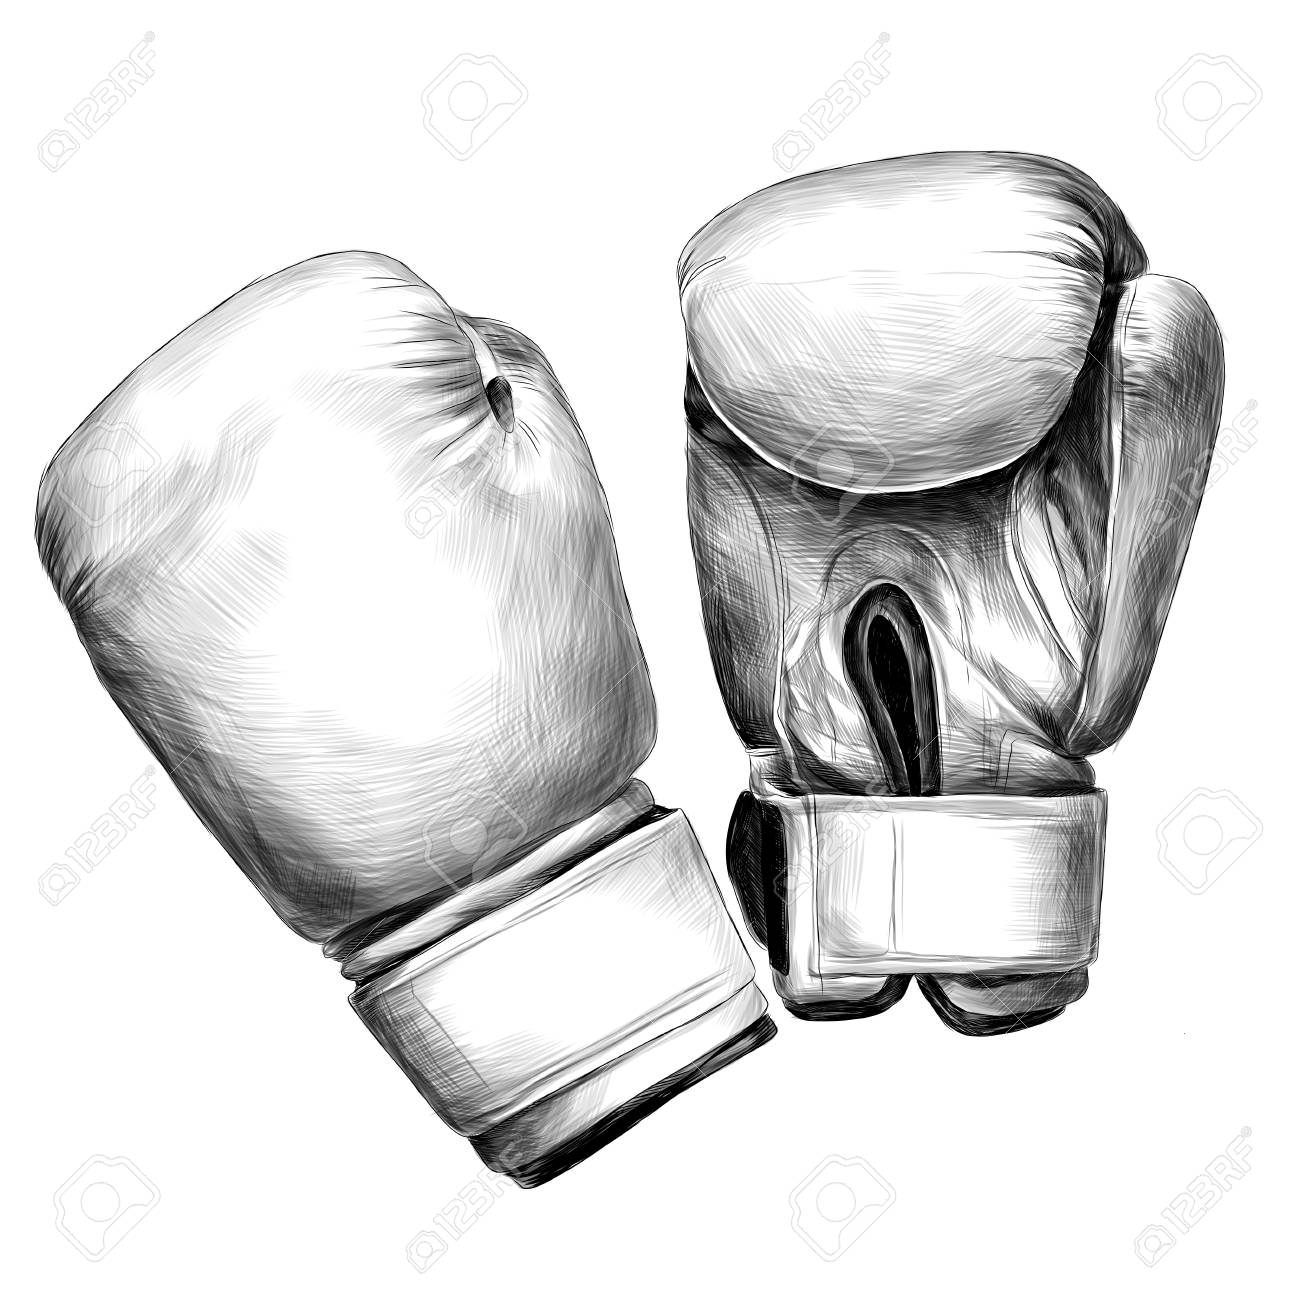 Boxing gloves sketch vector graphics monochrome black.